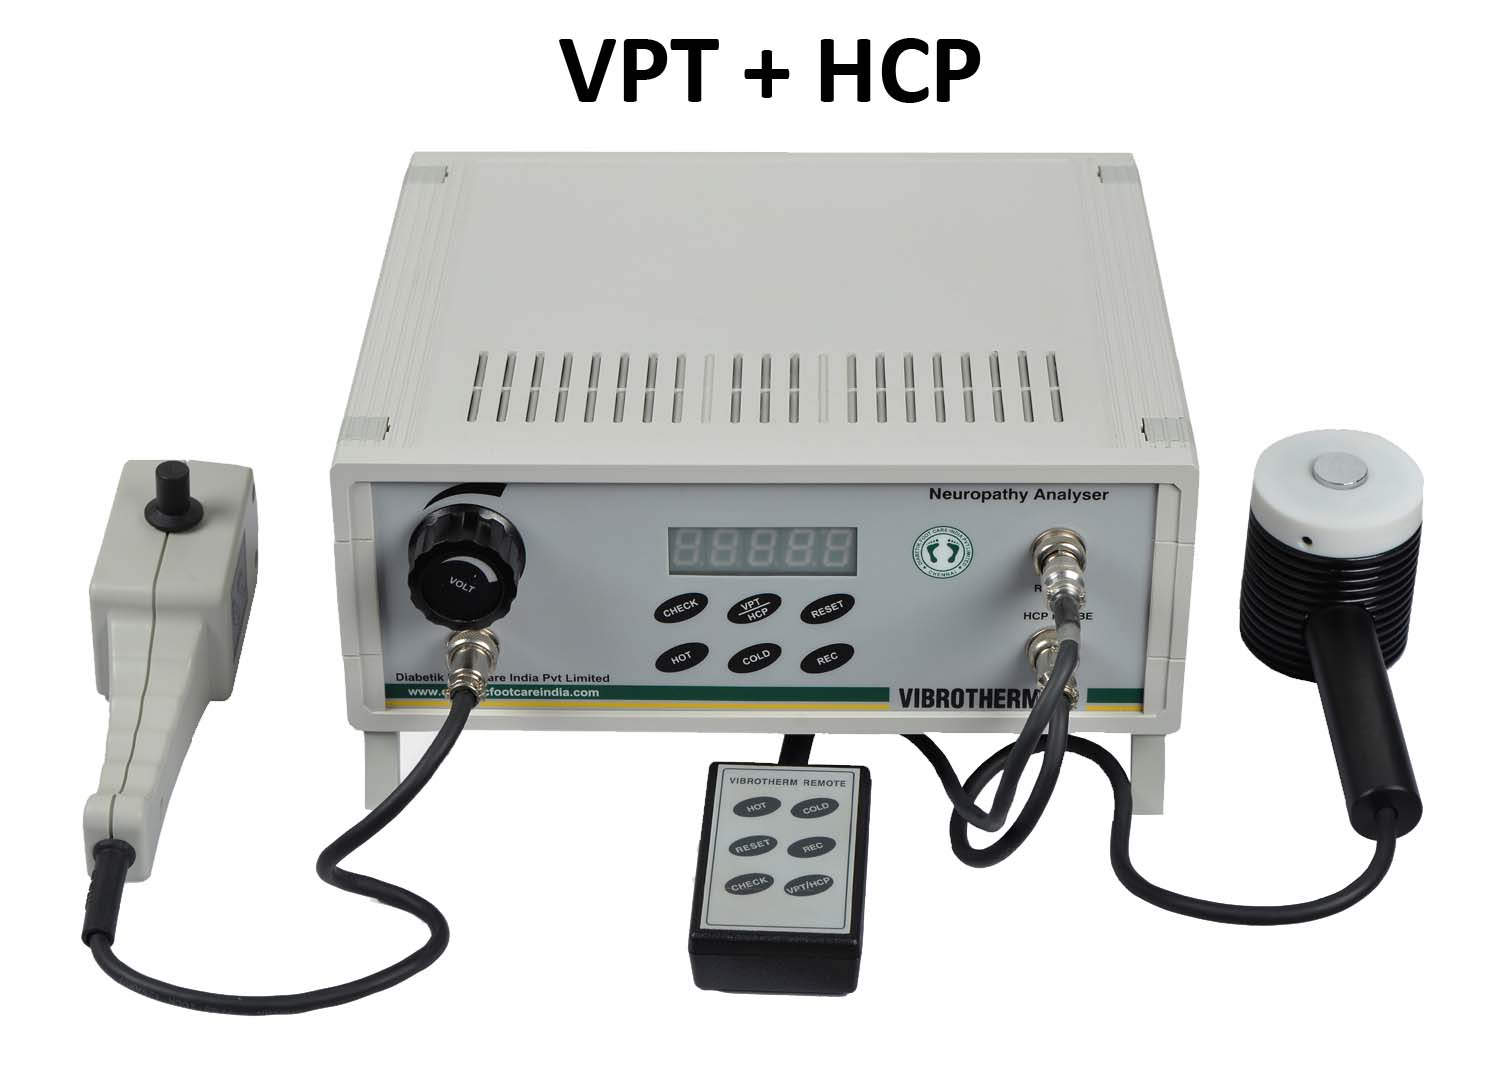 Neuropathy Analyser Model VIBR